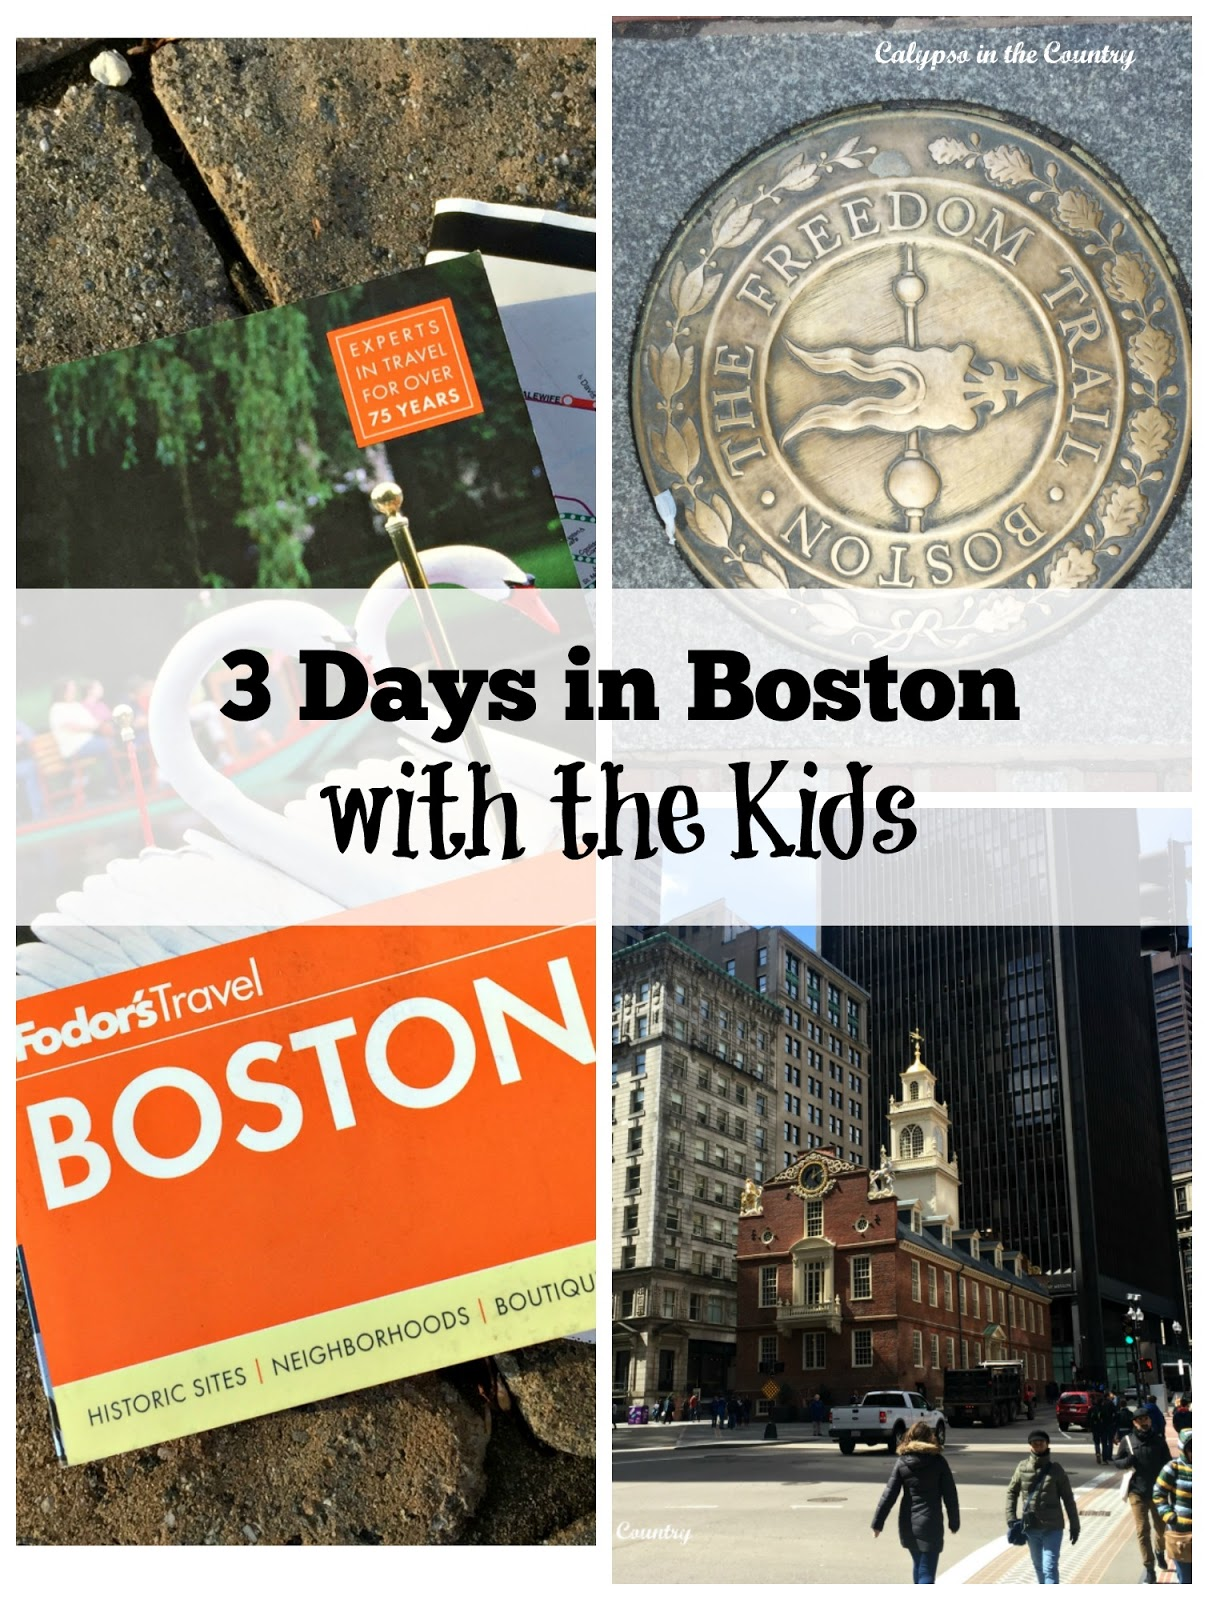 3 Days in Boston with the Kids